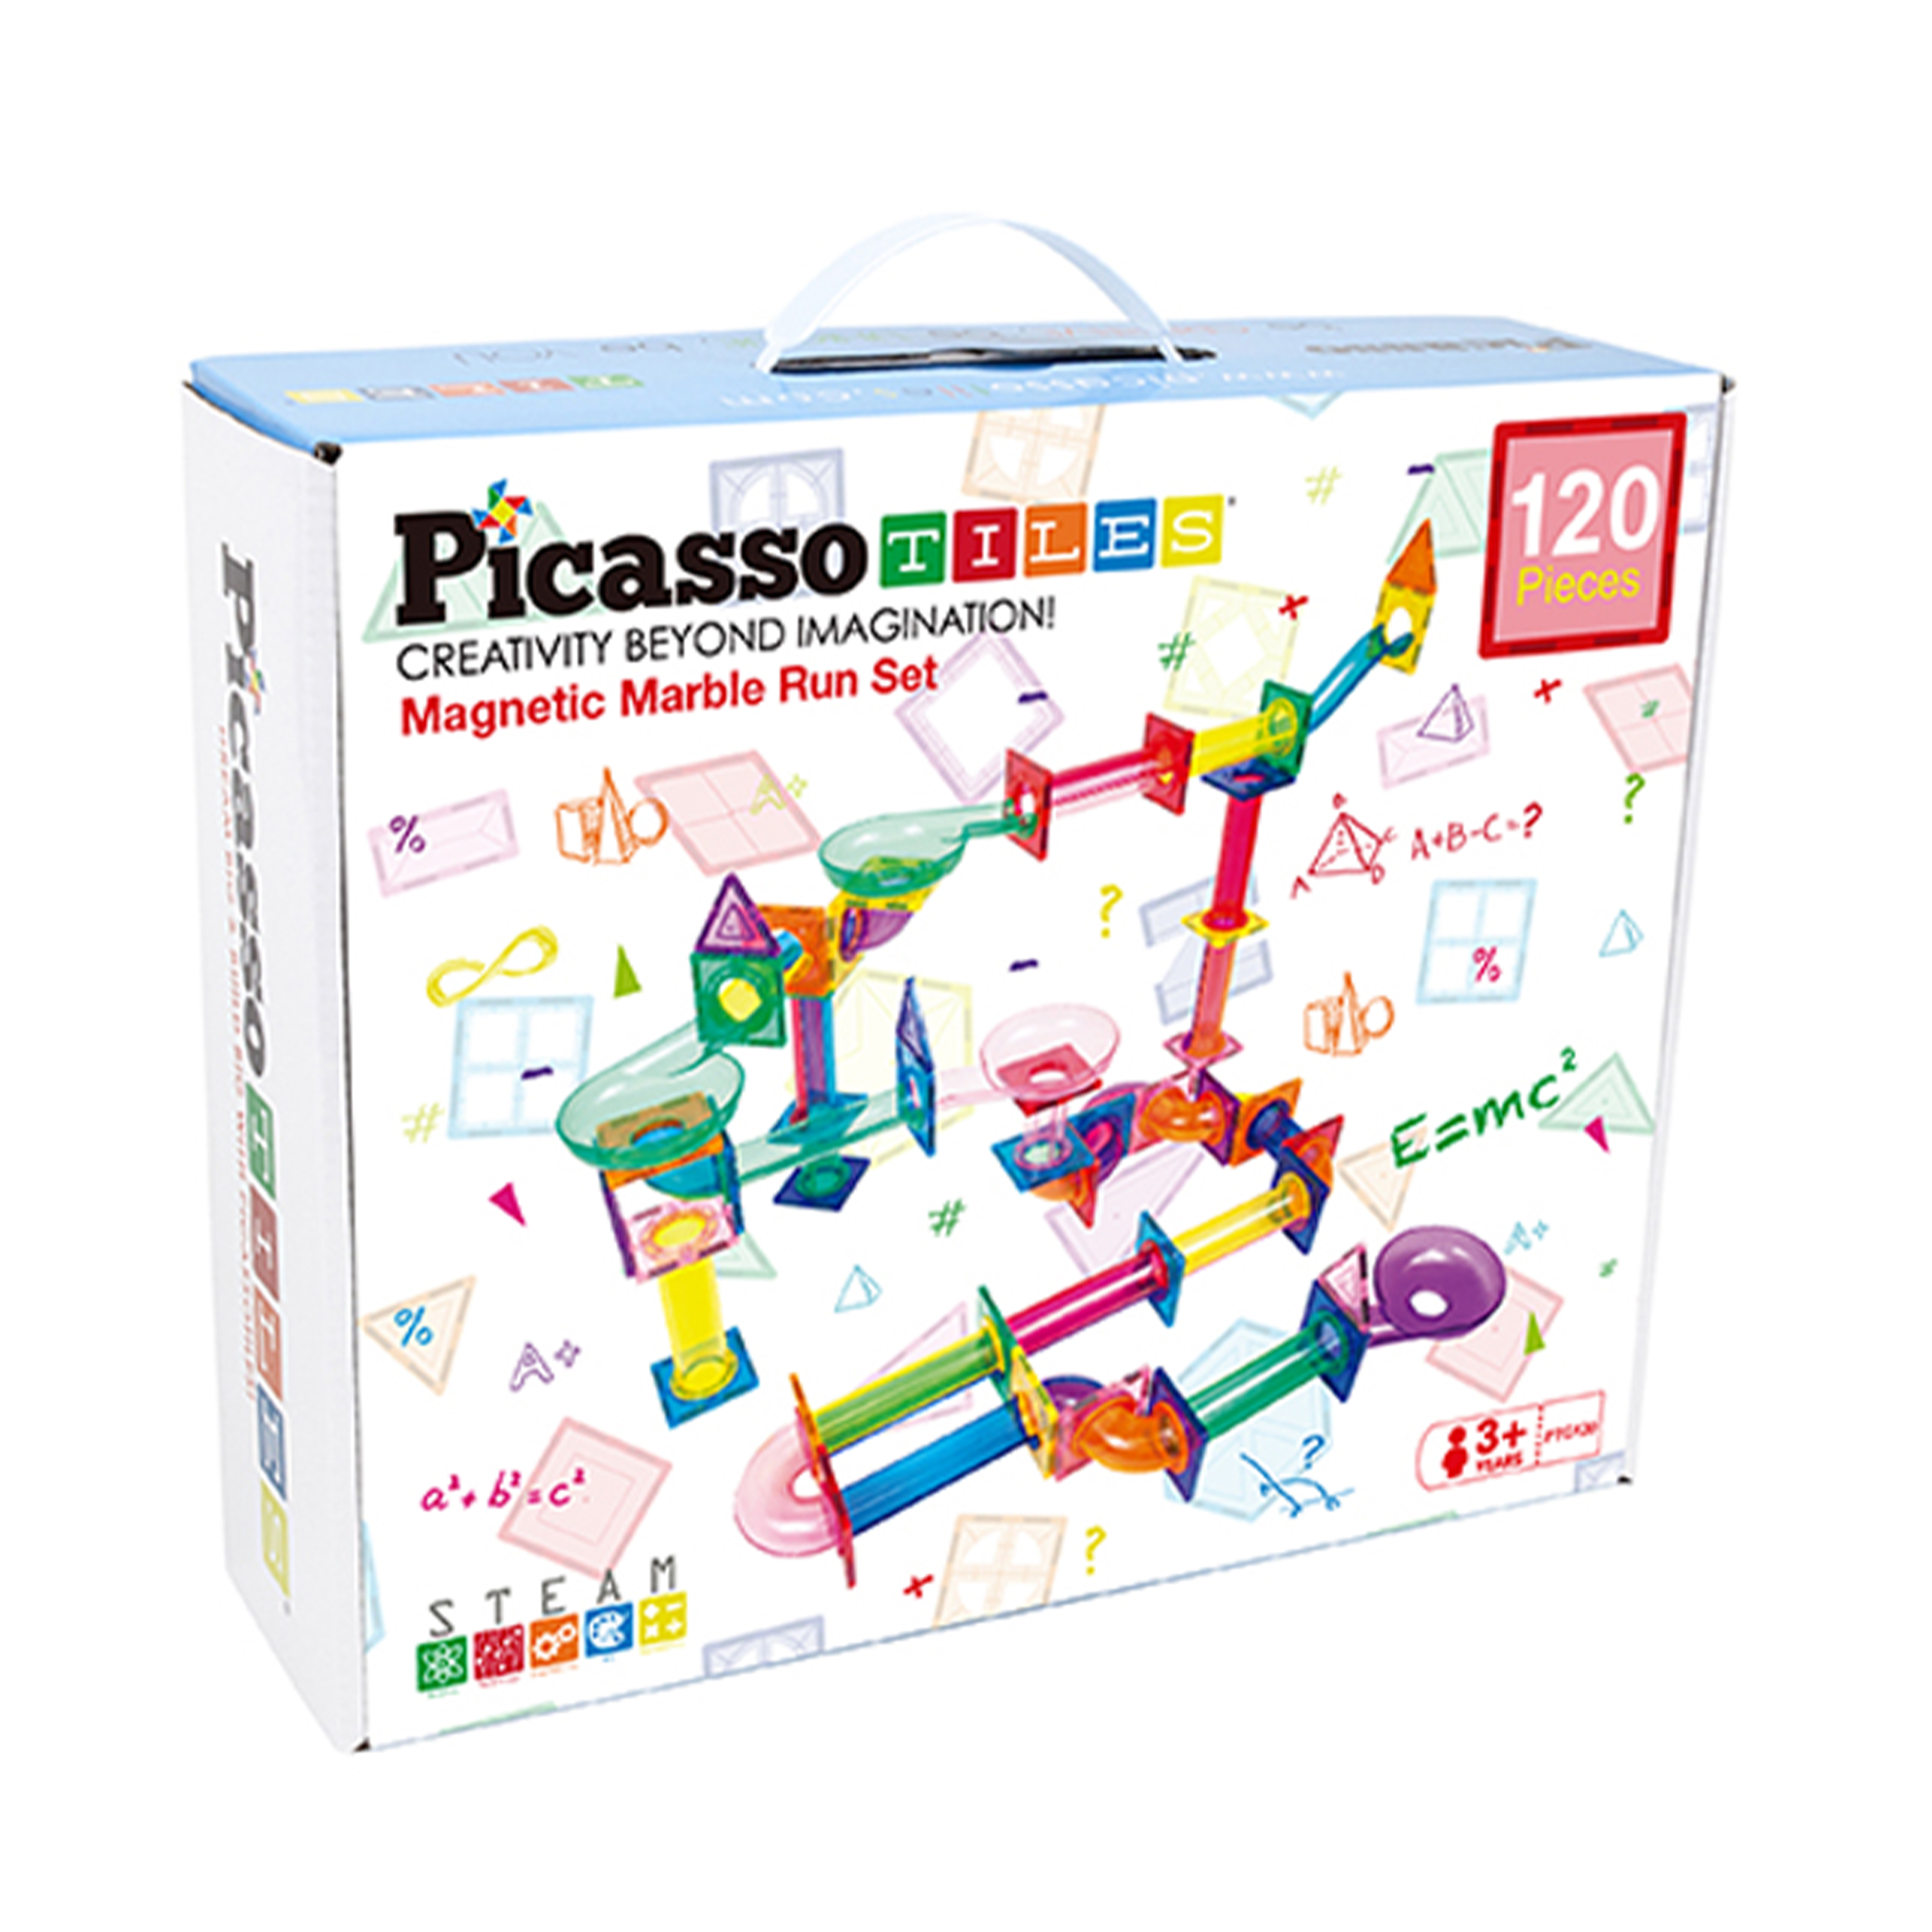 7a6532f7 7168 4d74 b652 70a3c75b75a1.  - PicassoTiles Marble Run 120 Piece Magnetic Building Blocks Magnet Tile Construction Toy Playset STEM Learning Educational Block Child Brain Development Kids Toys for Boys and Girls Age 3 and Up